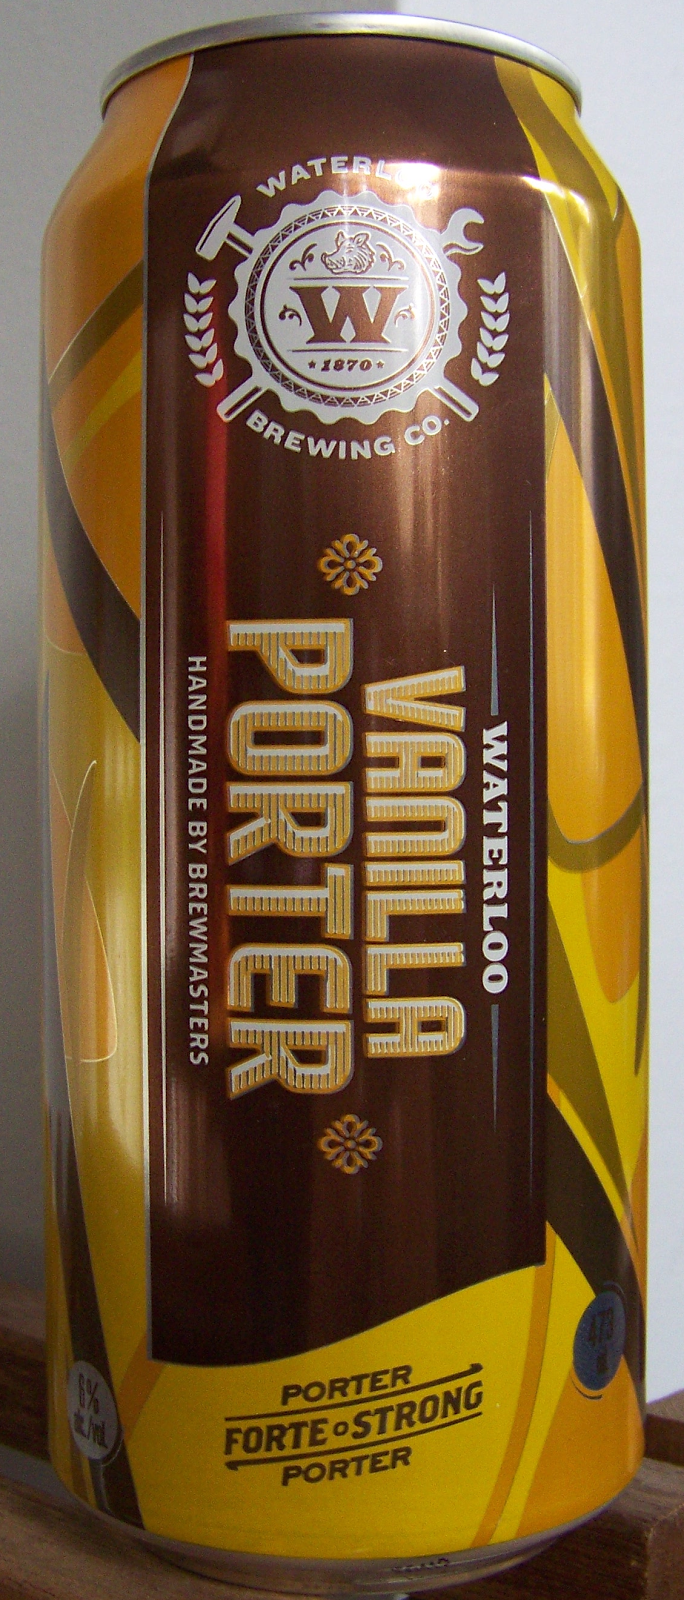 Beer maven vanilla porter waterloo brewing canada for Porter canada